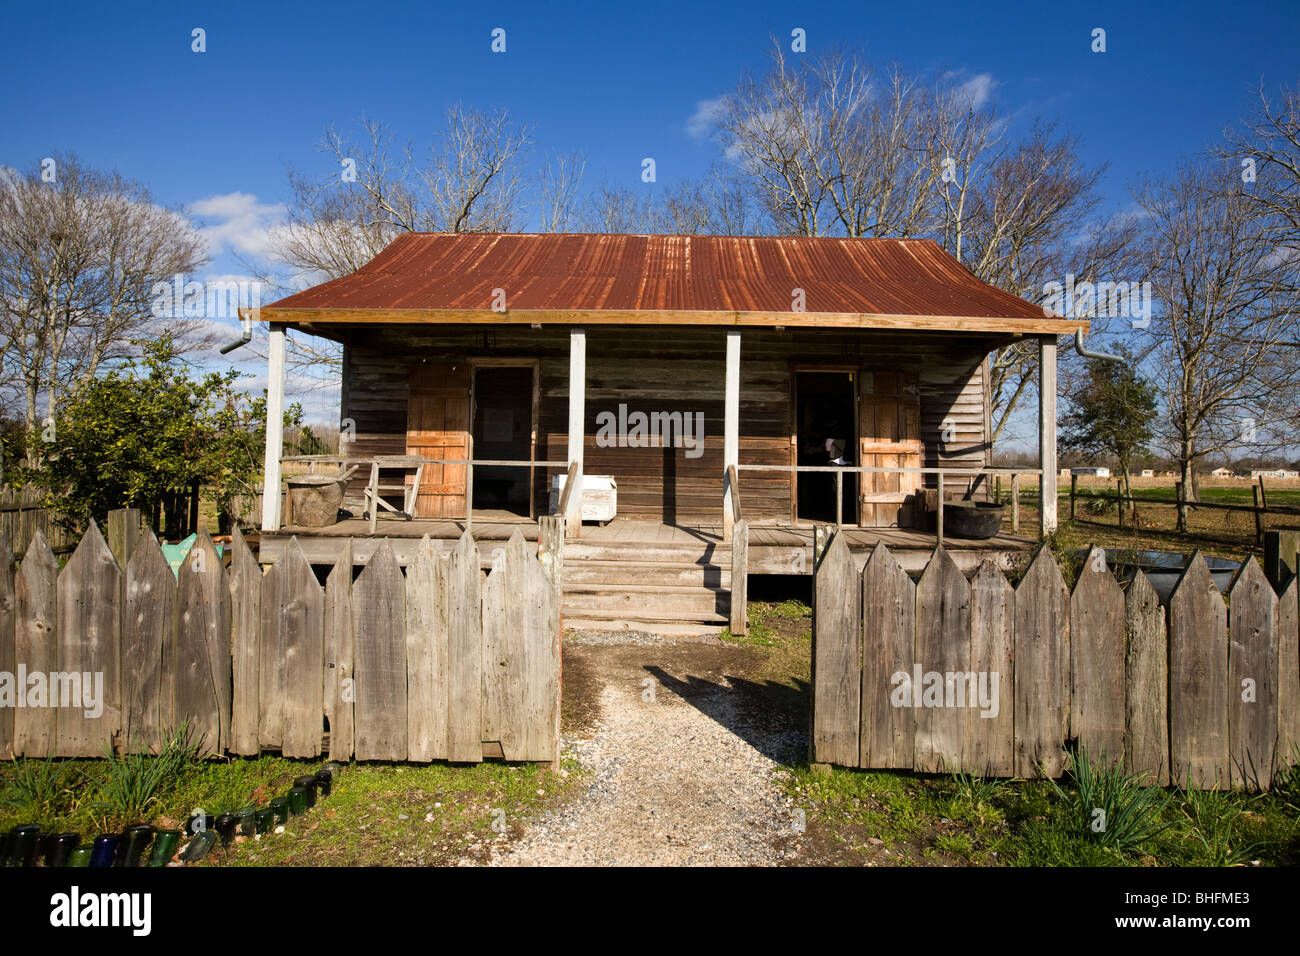 Slave Cabin At Laura Plantation, River Road, North Of New Orleans,  Louisiana, Home Of Brer Rabbit Stories